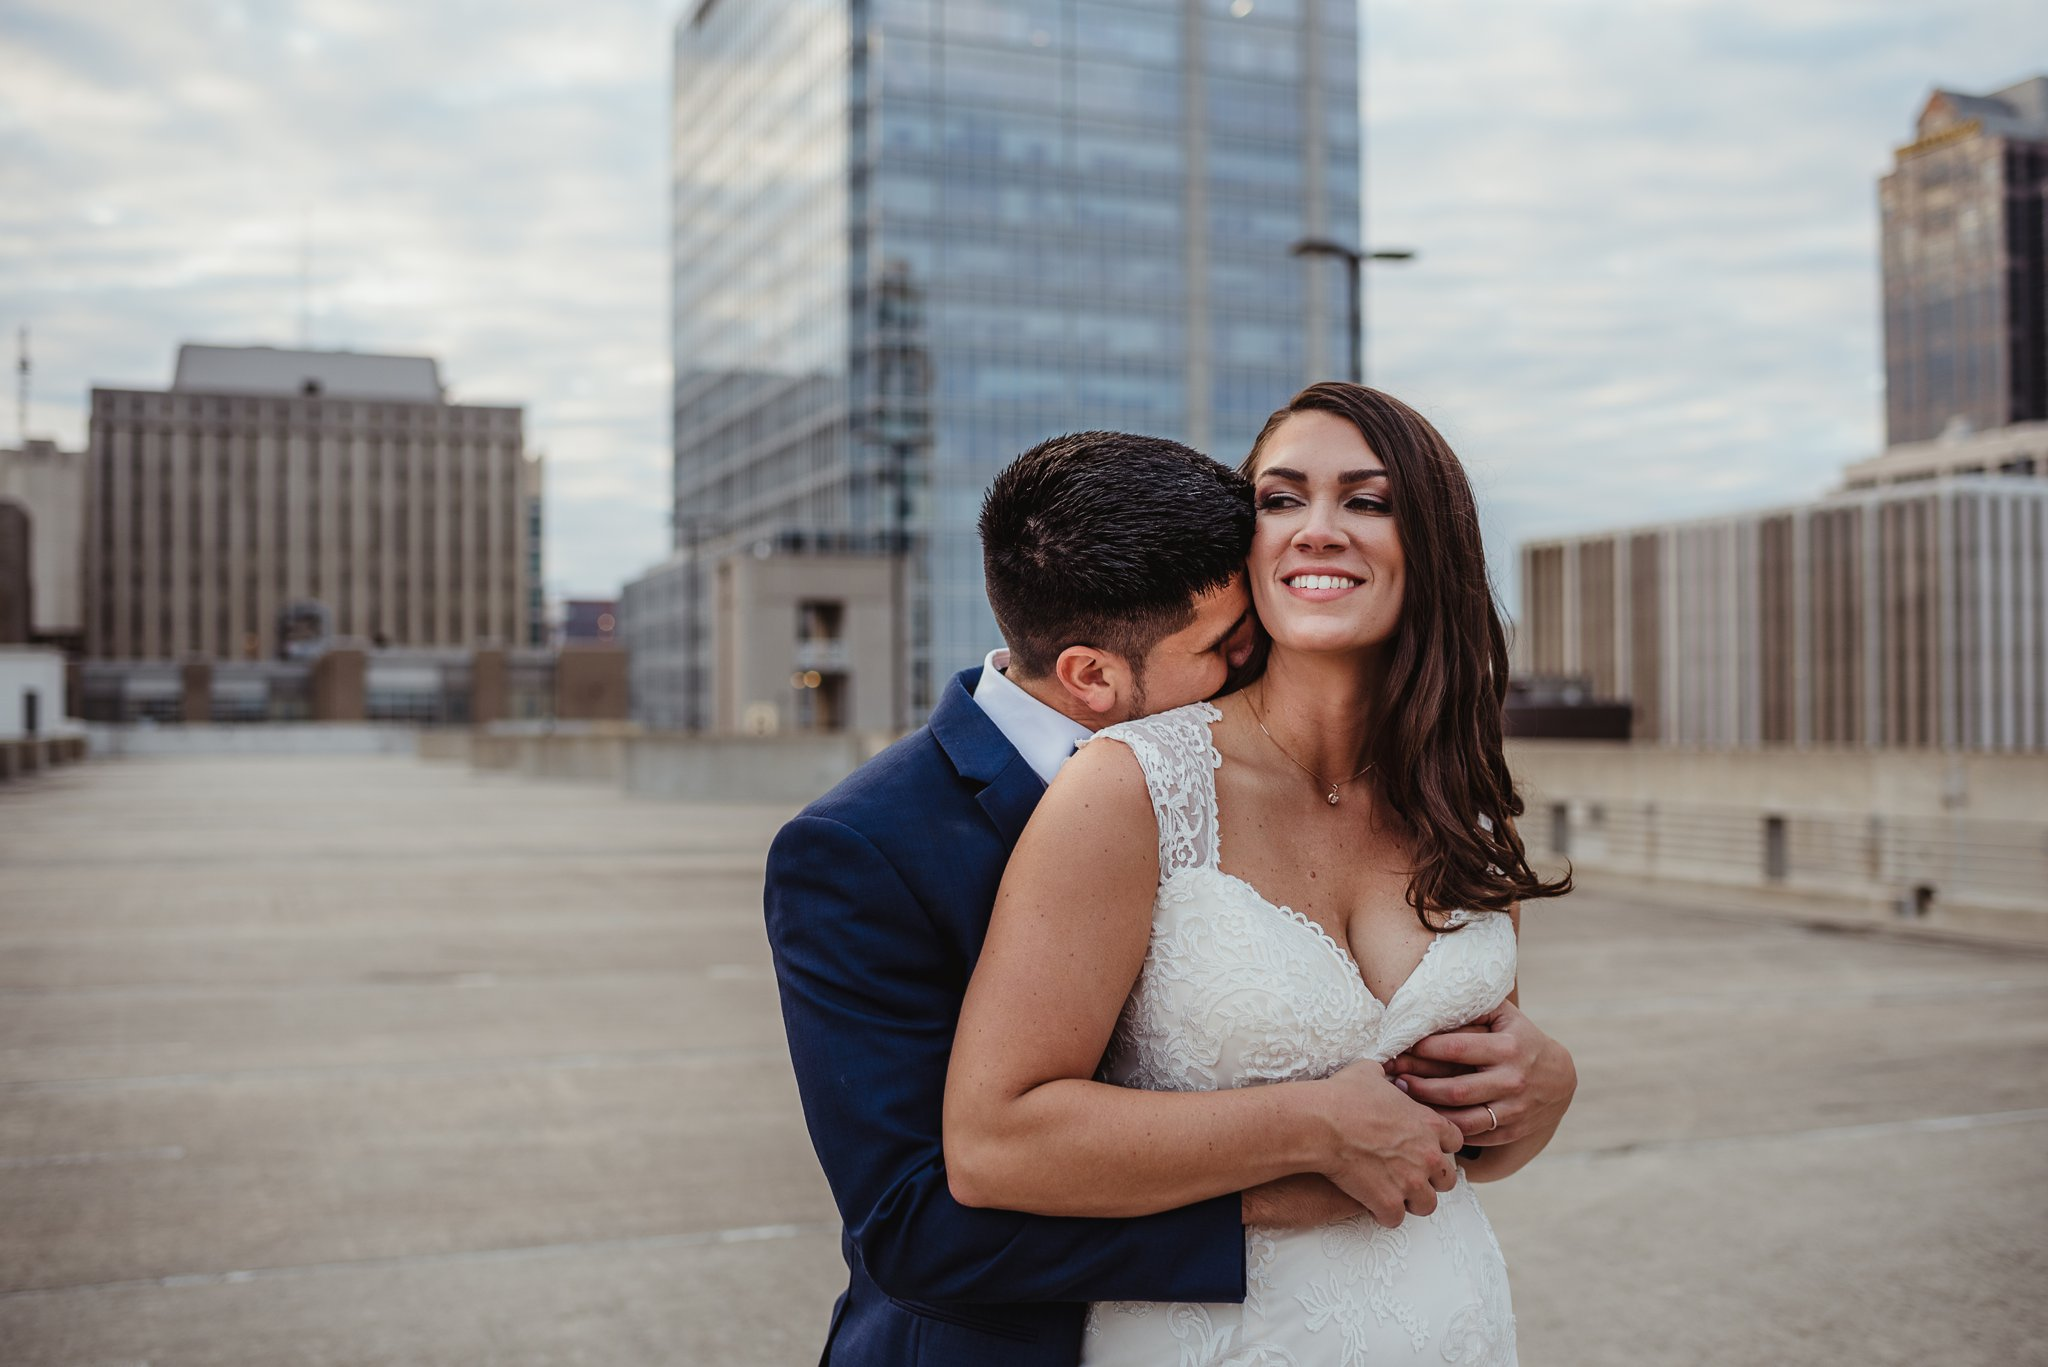 The bride and groom hugged on a rooftop after their wedding ceremony in downtown Raleigh, photos by Rose Trail Images.